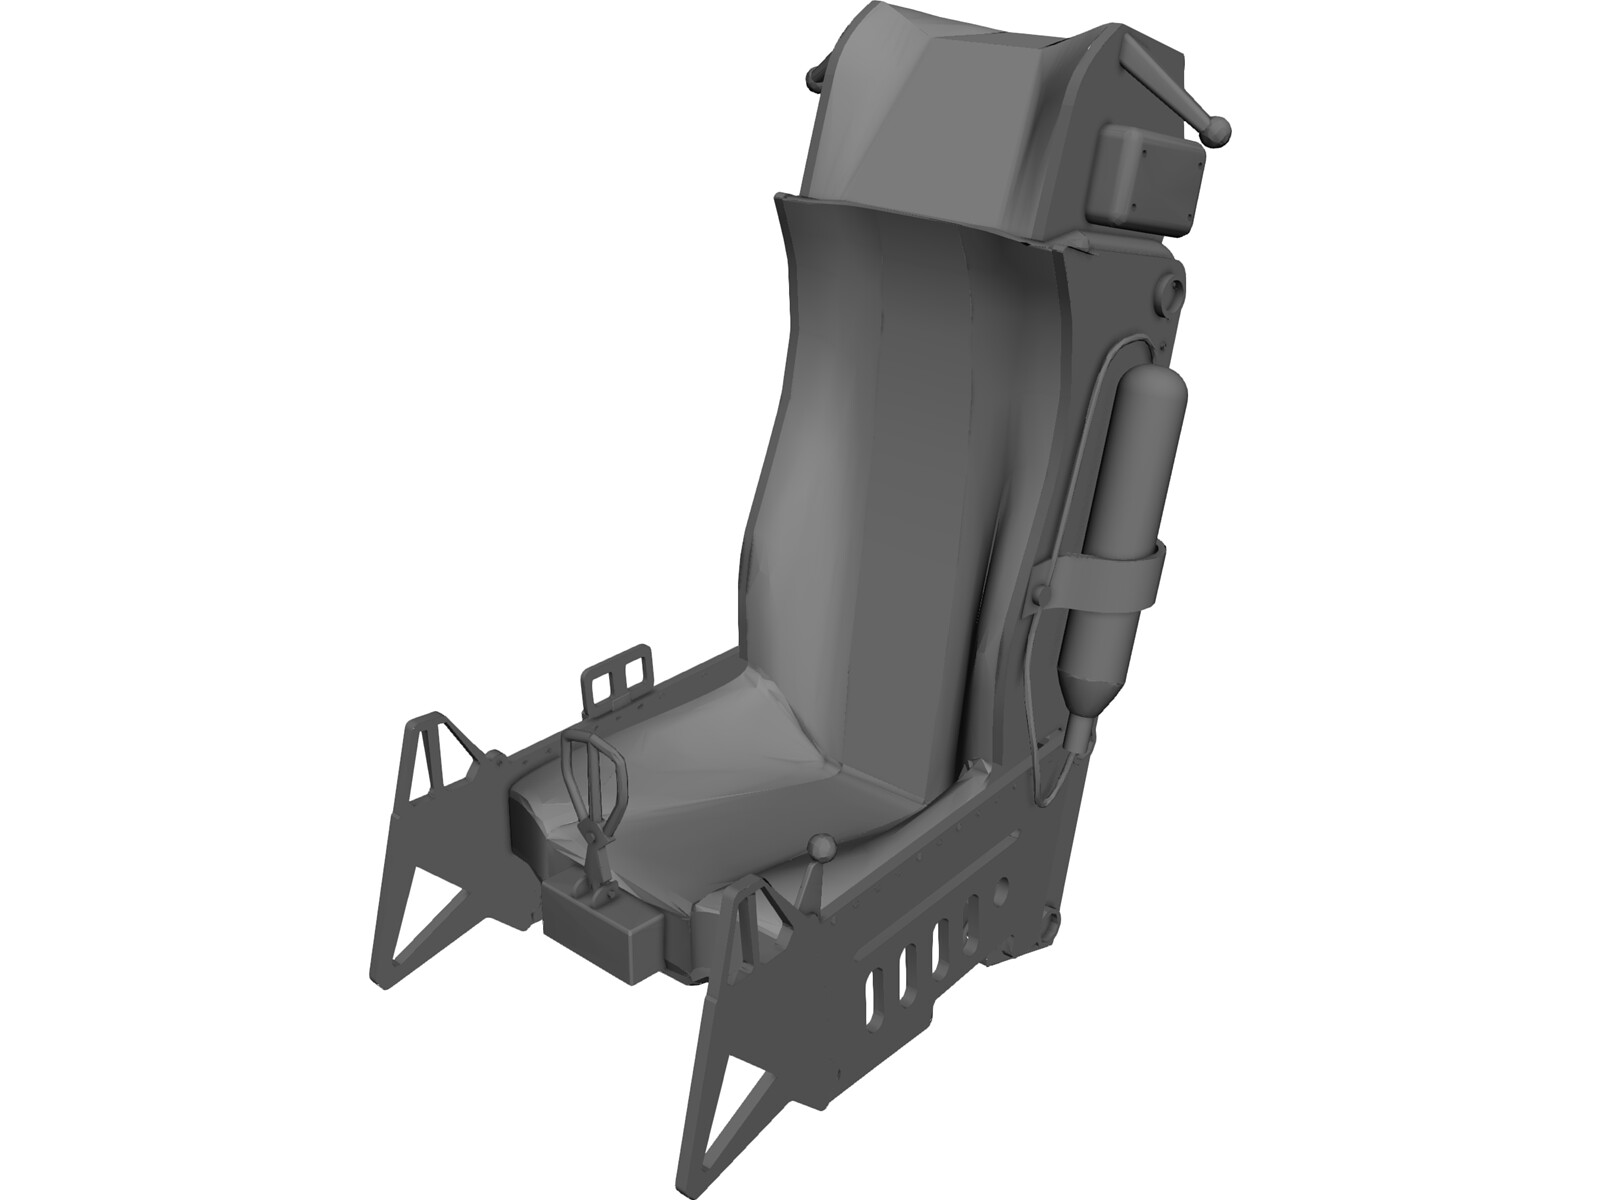 Ejection Seat